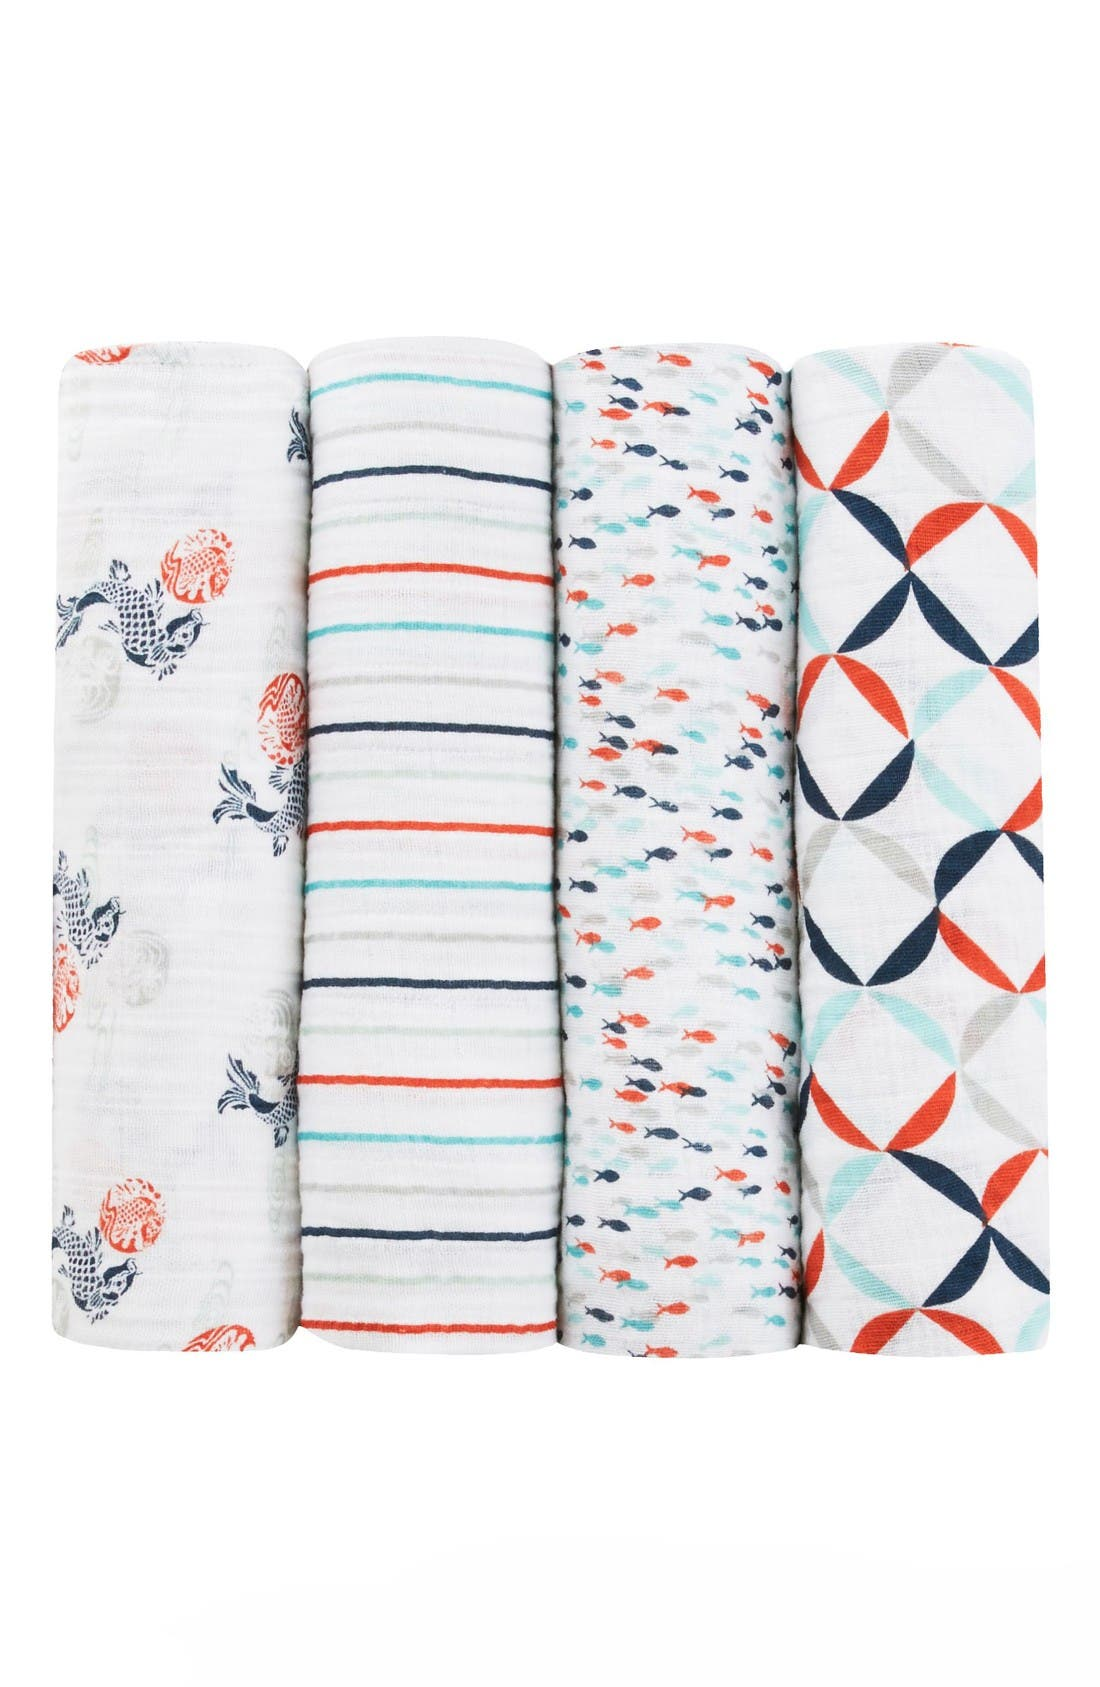 Alternate Image 1 Selected - aden + anais x Tea Collection 4-Pack Swaddling Cloths